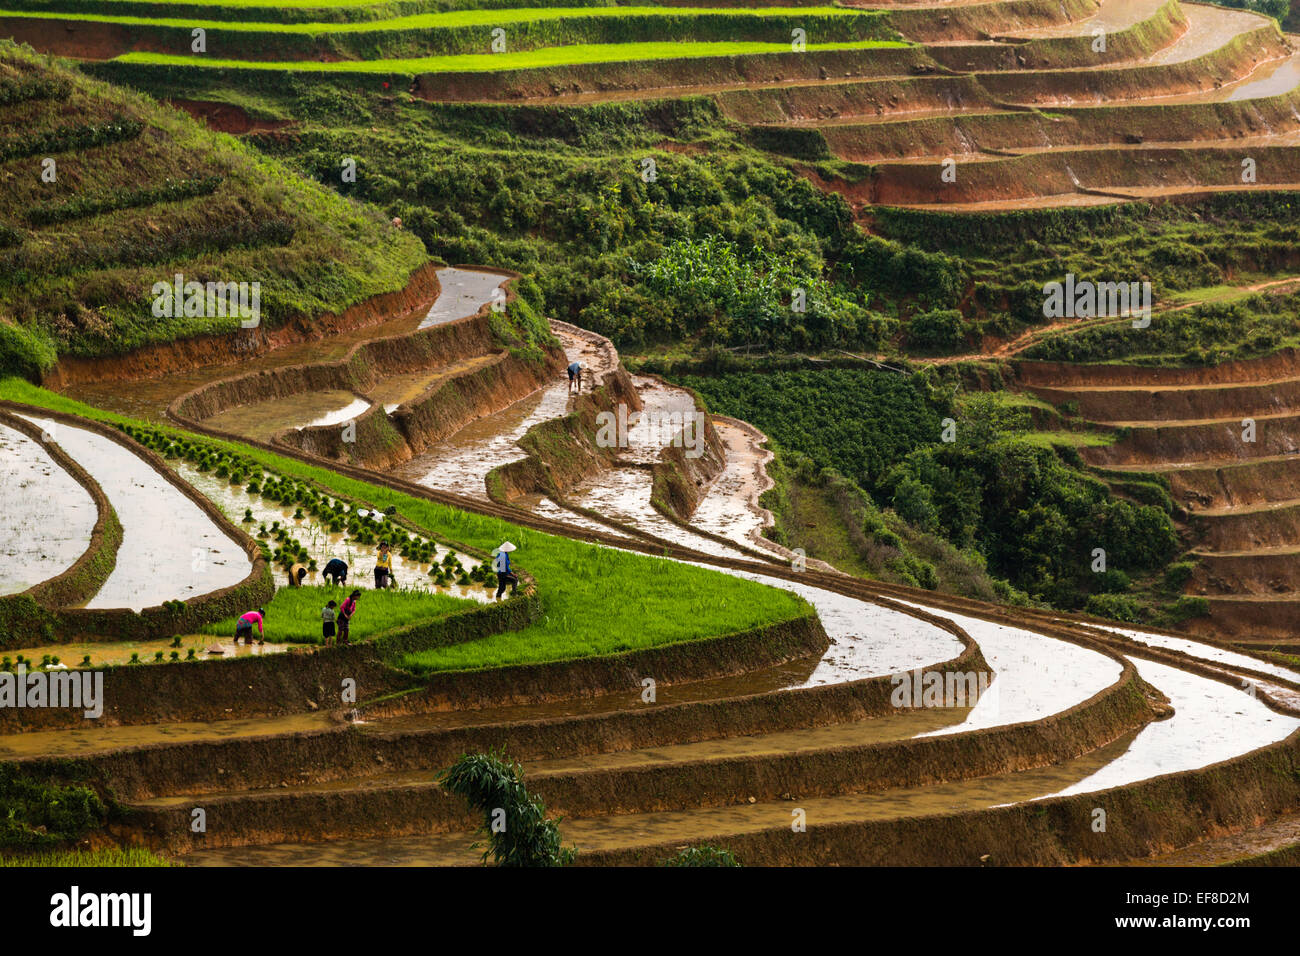 Farmers planting rice on terraces during rainy season near Sa Pa to Lao Cai Road, northern Vietnam - Stock Image